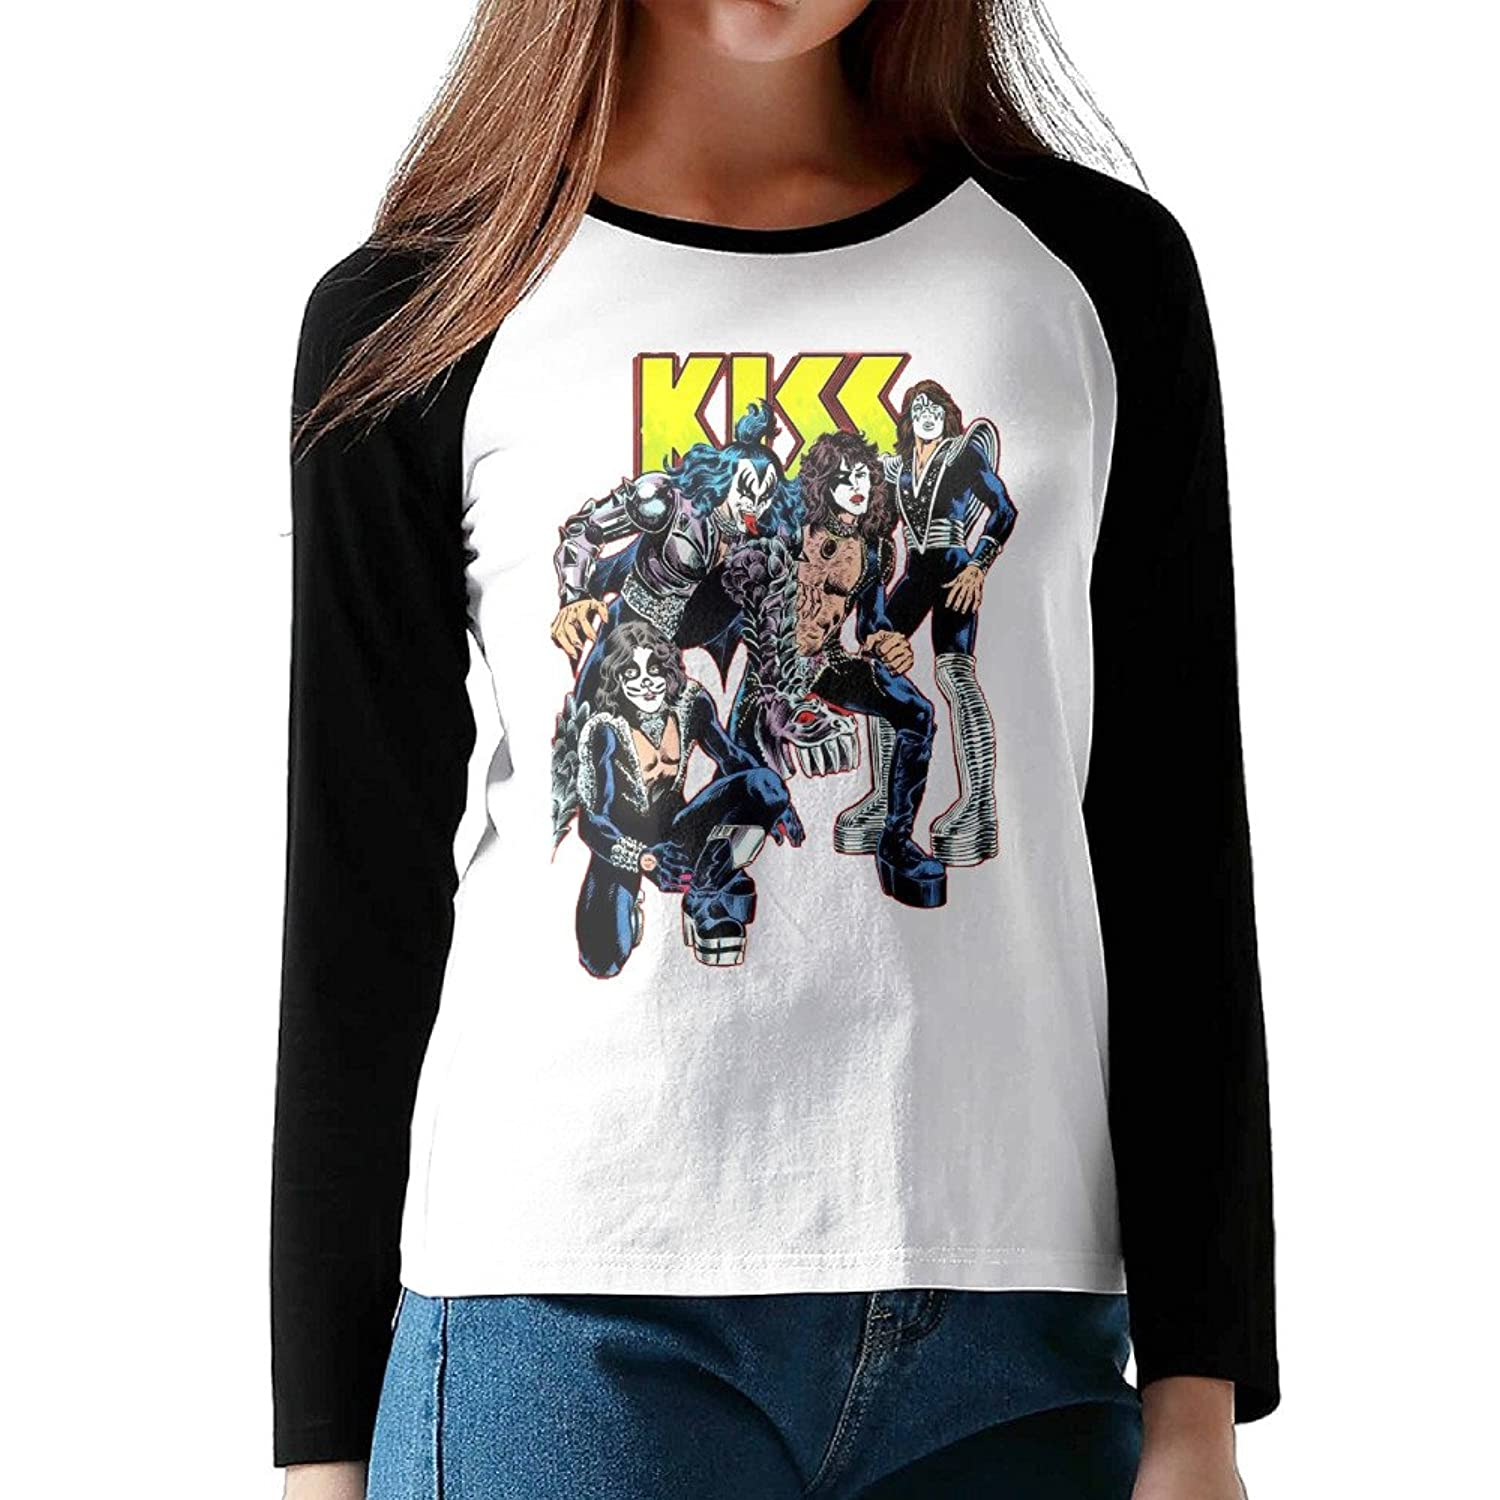 Kiss Band Black Girls Blended Contrast Shirts